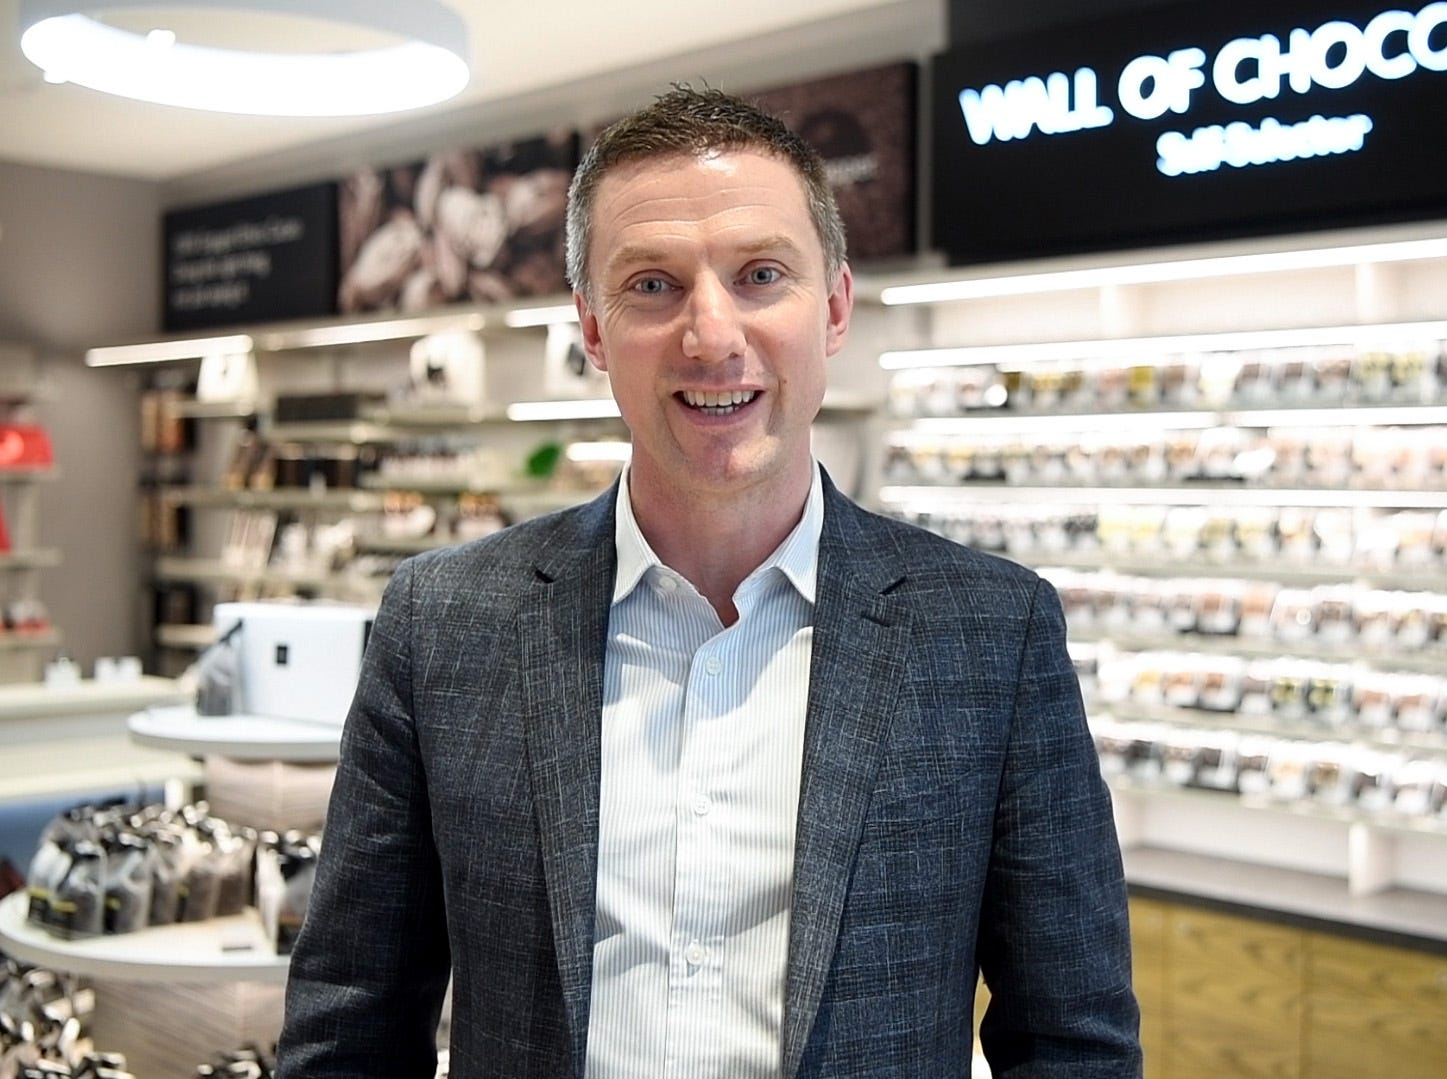 Brendan Drake, U.S. CEO fo Hotel Chocolat, at the store opening in Westfield Garden State Plaza on Wednesday, March 13, 2019, in Paramus. This is the second store the U.K.-based company has opened in the United States.